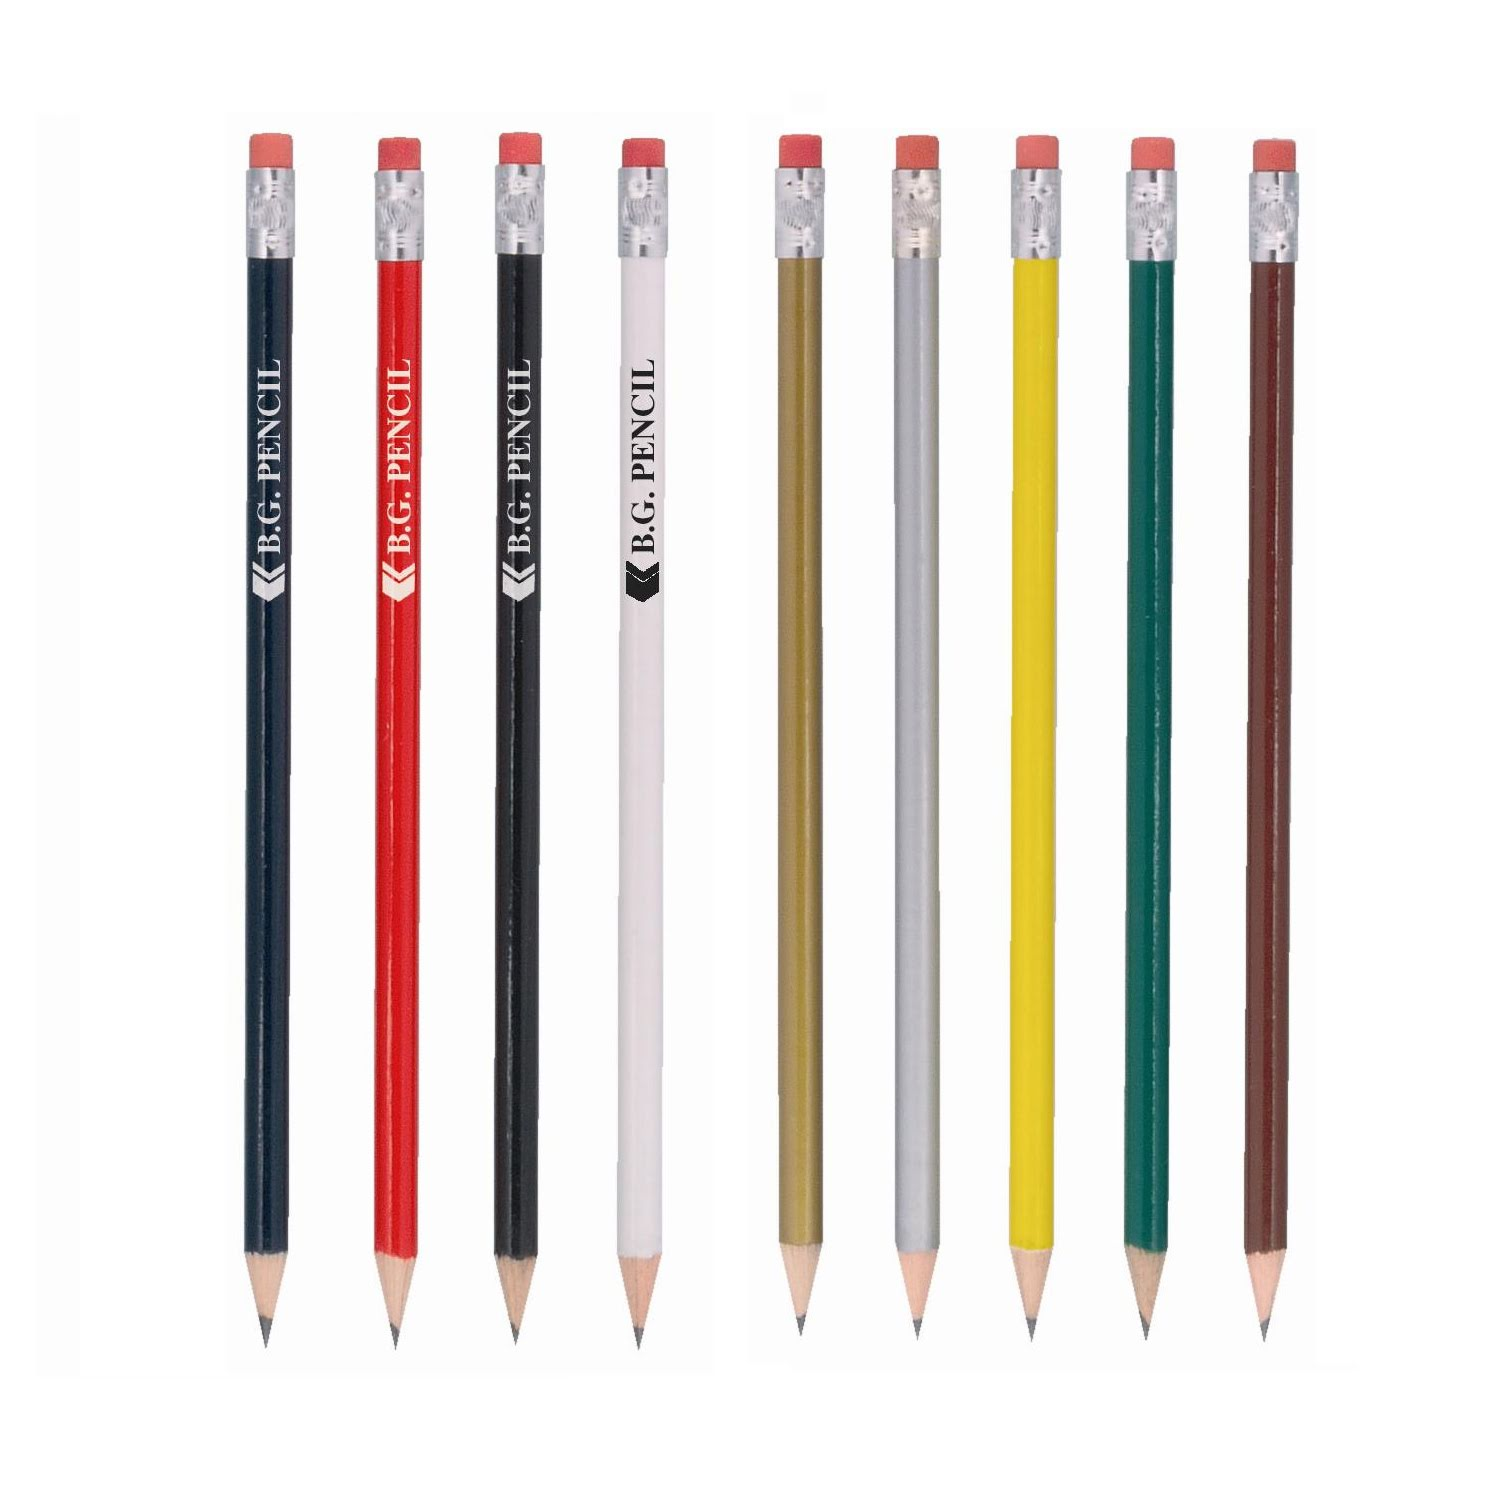 Promotional Pencils with Eraser